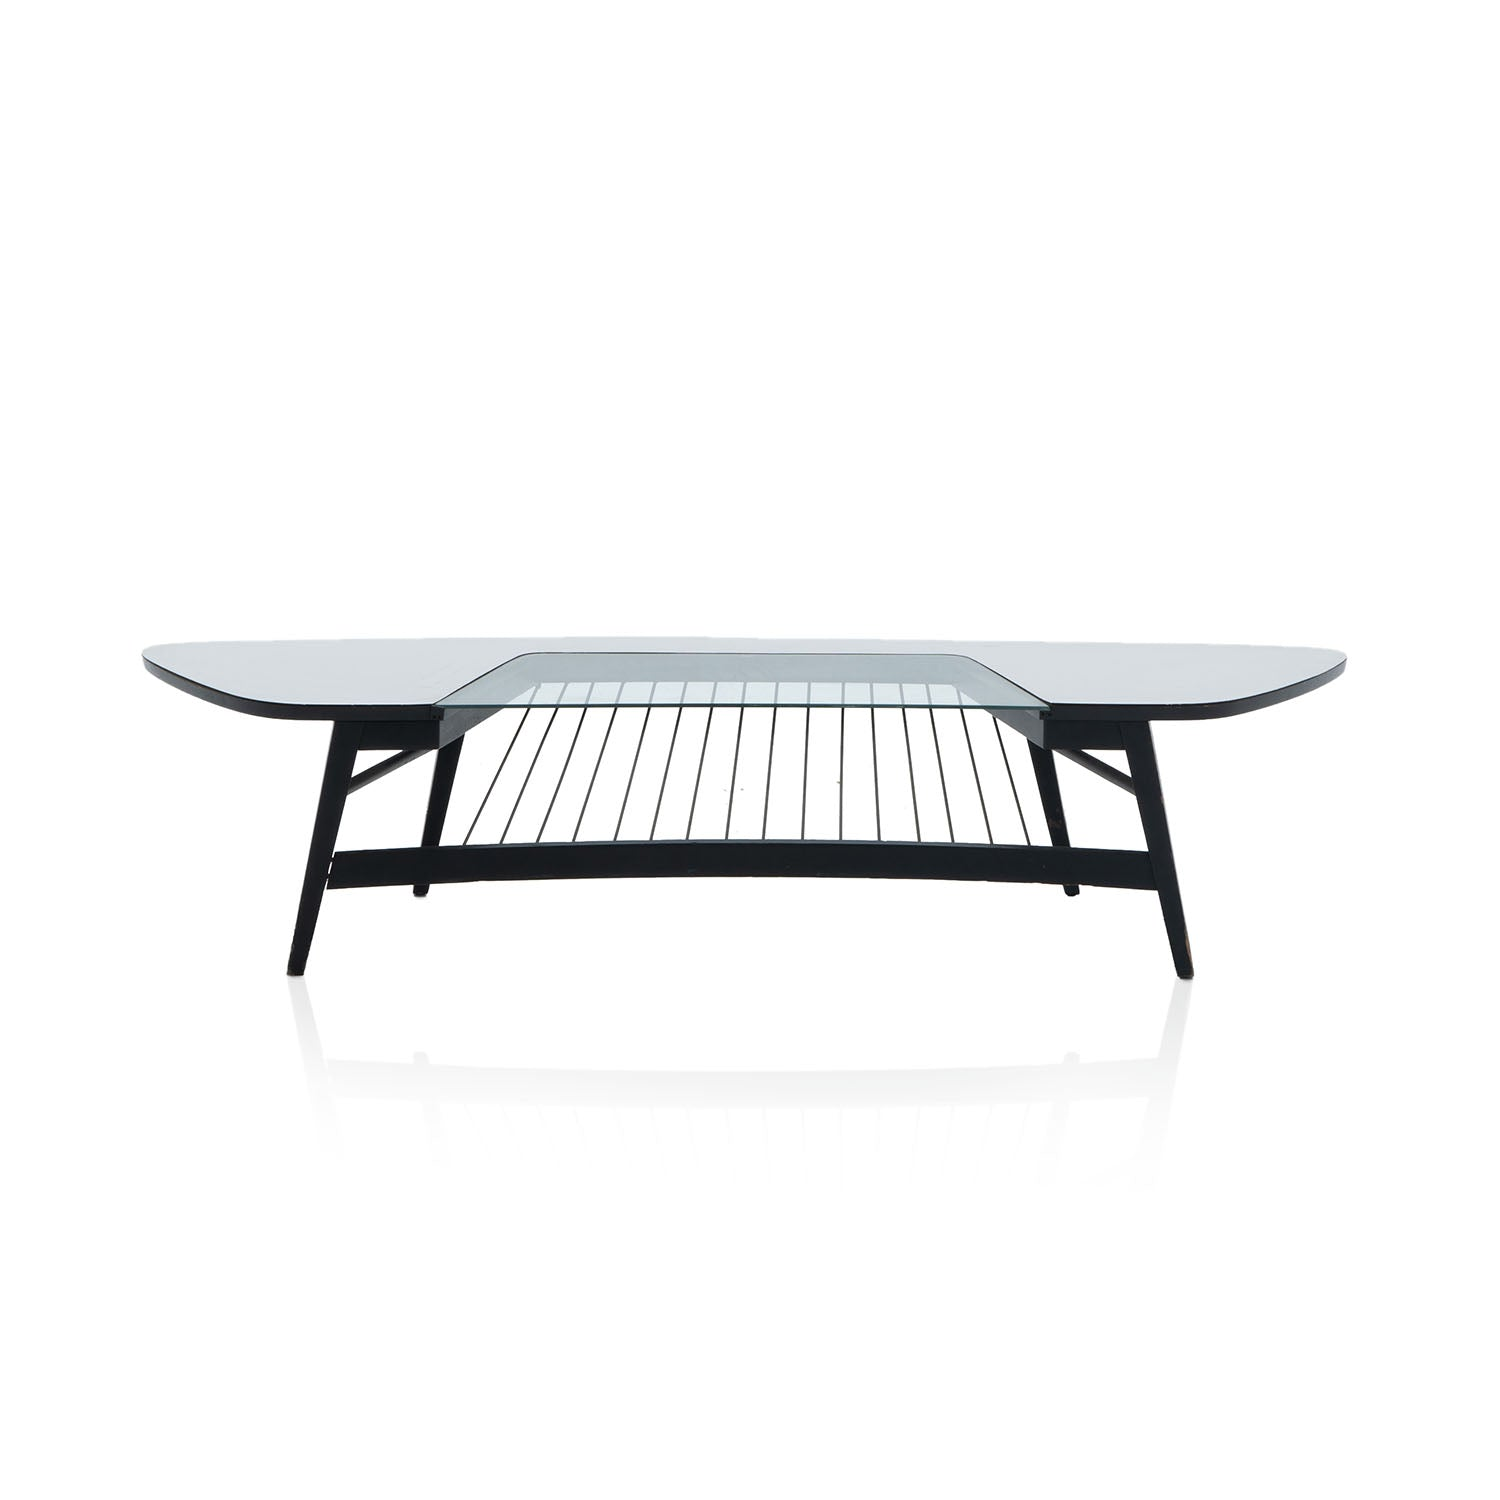 Image of: Black String Mid Century Coffee Table Modernica Props